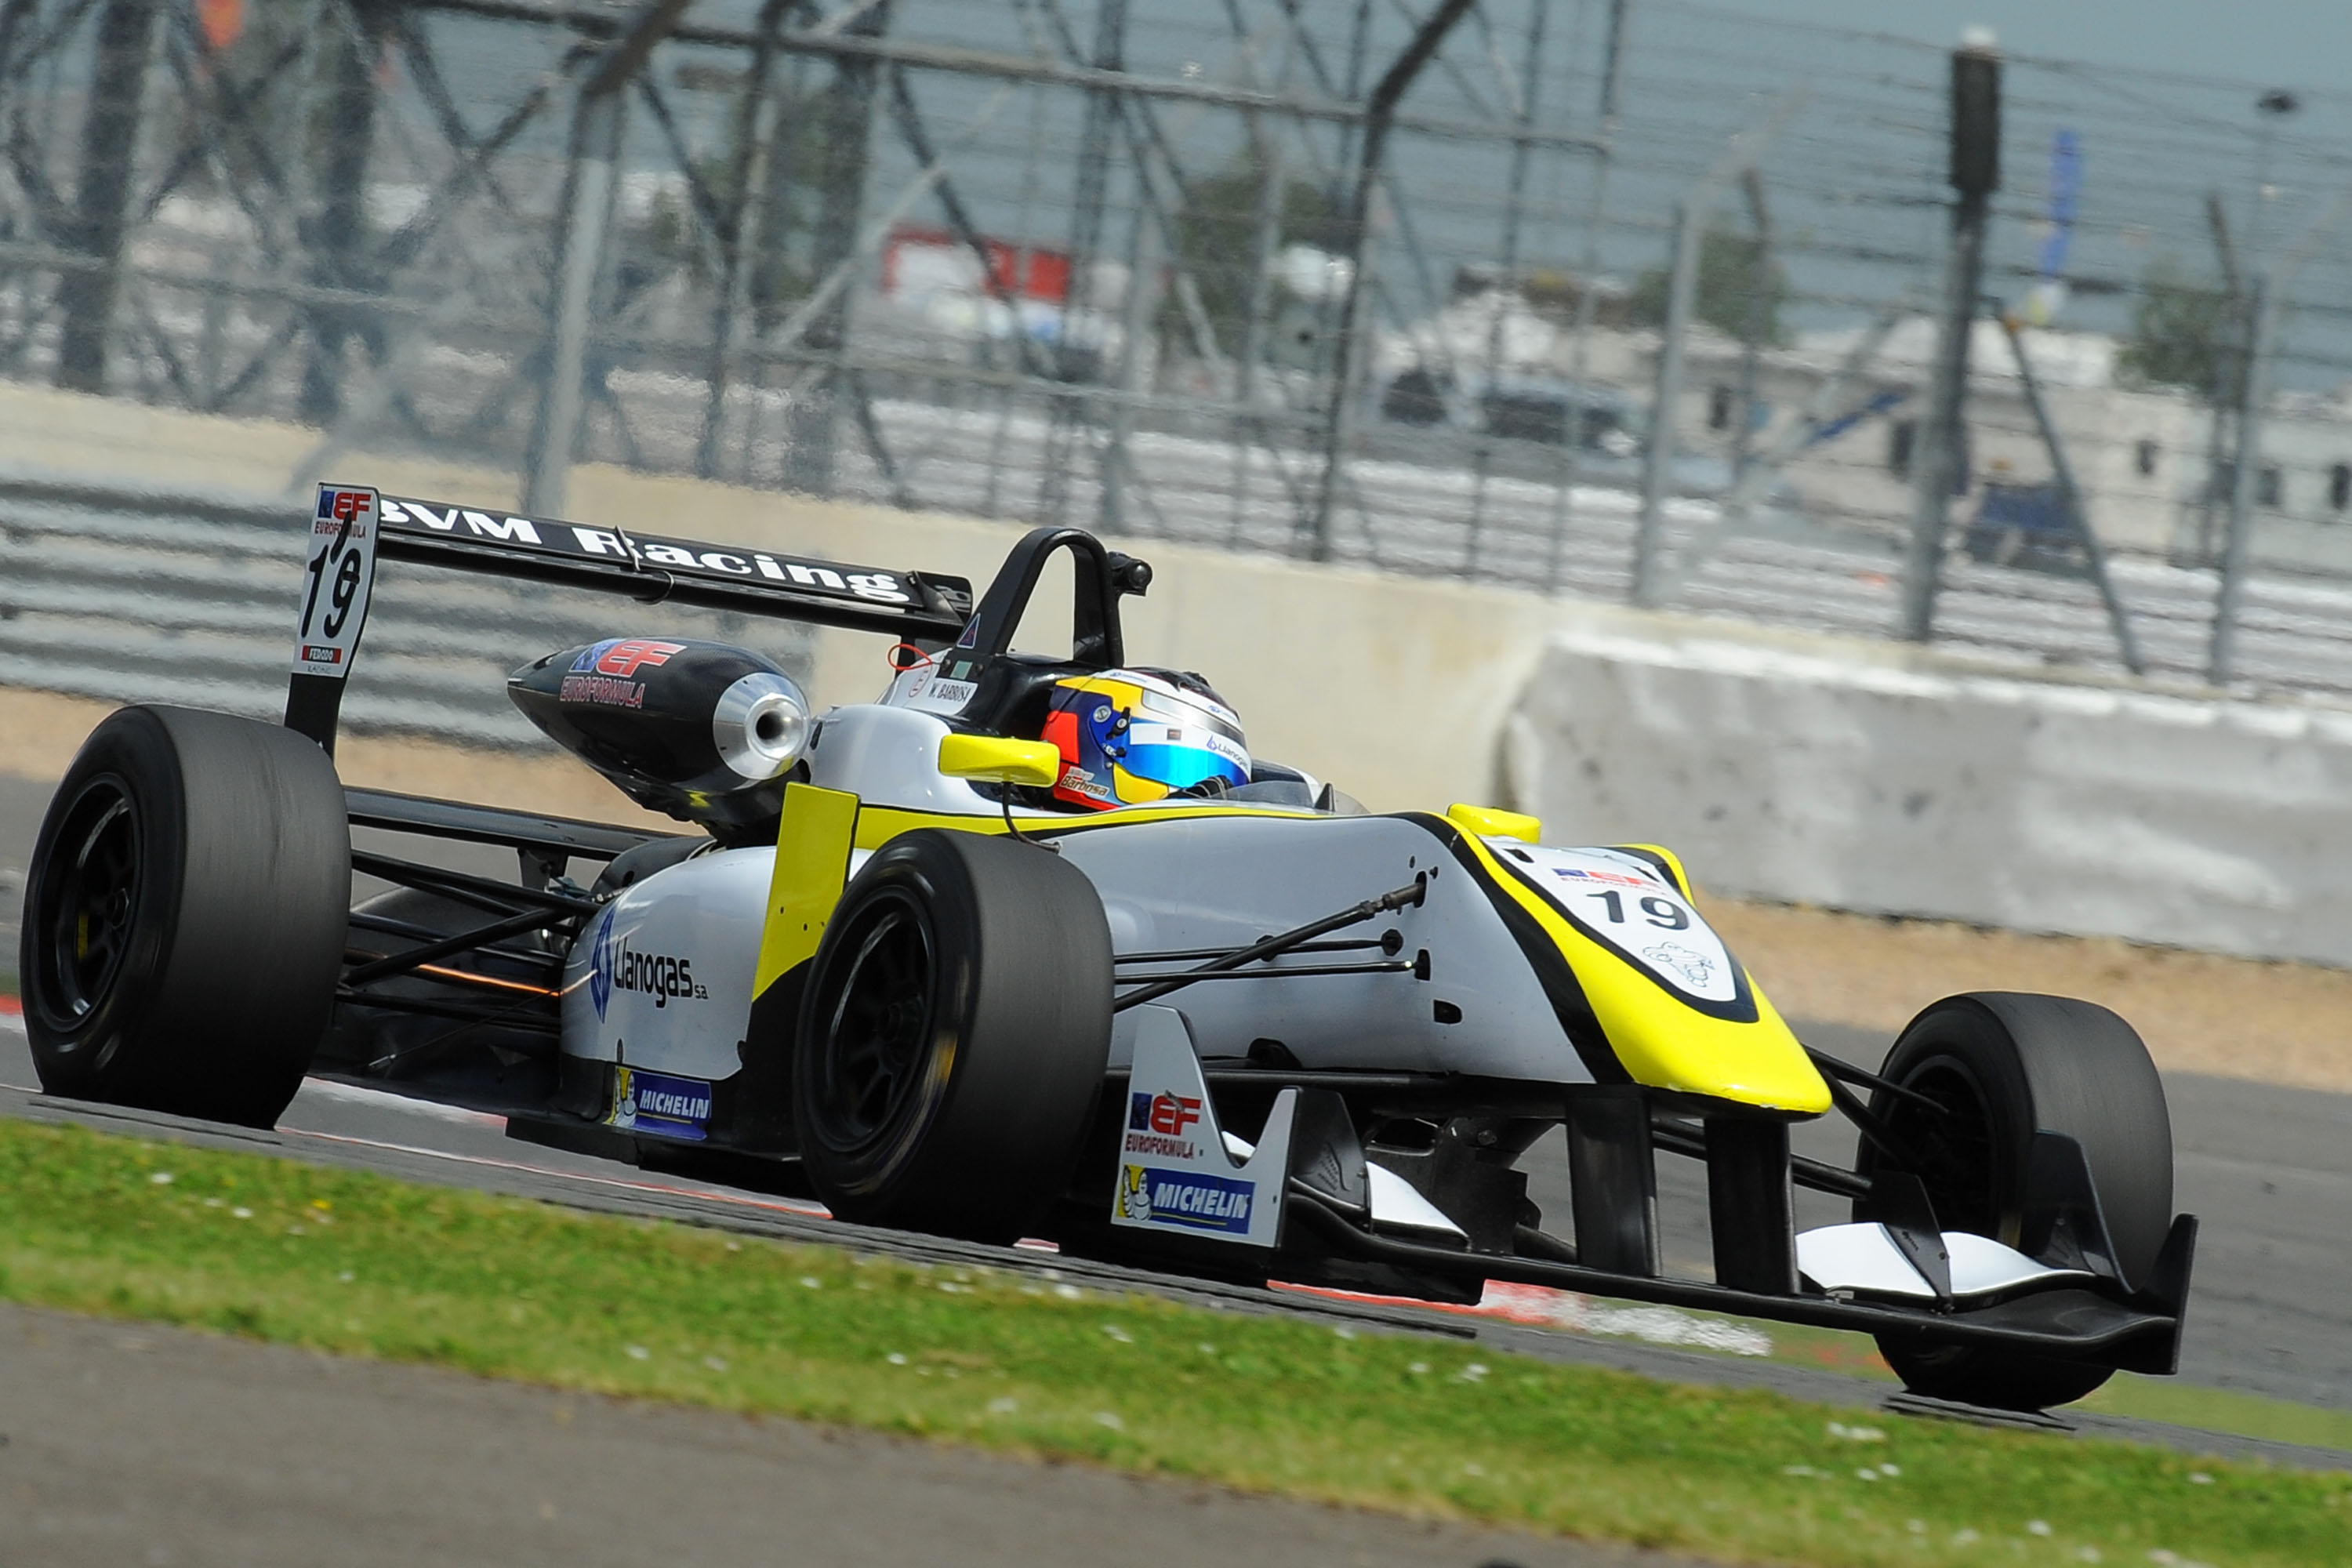 William_Barbosa_G_EuroformulaOpen_Práctica1Junio5_15_2.jpg